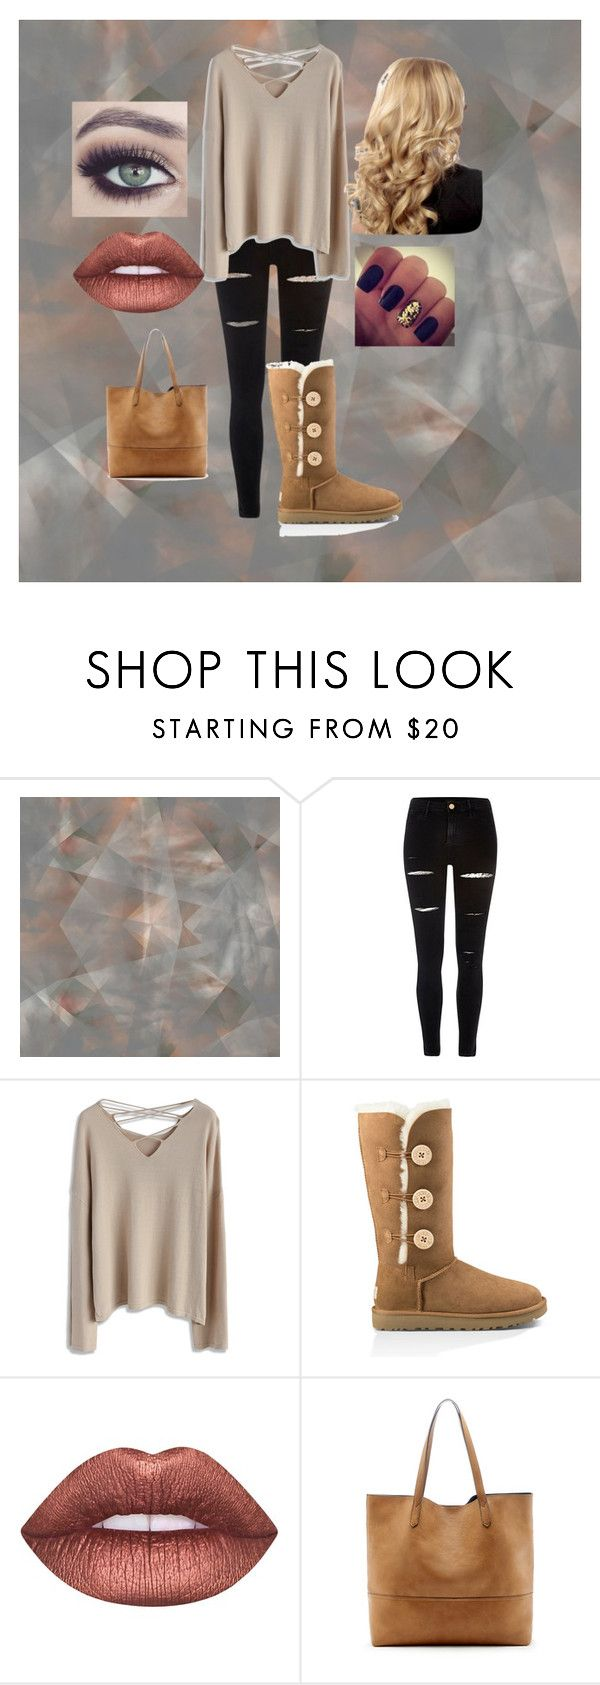 """Day at the mall"" by pentatonixfan24 ❤ liked on Polyvore featuring River Island, Chicwish, UGG Australia, Lime Crime and Sole Society"